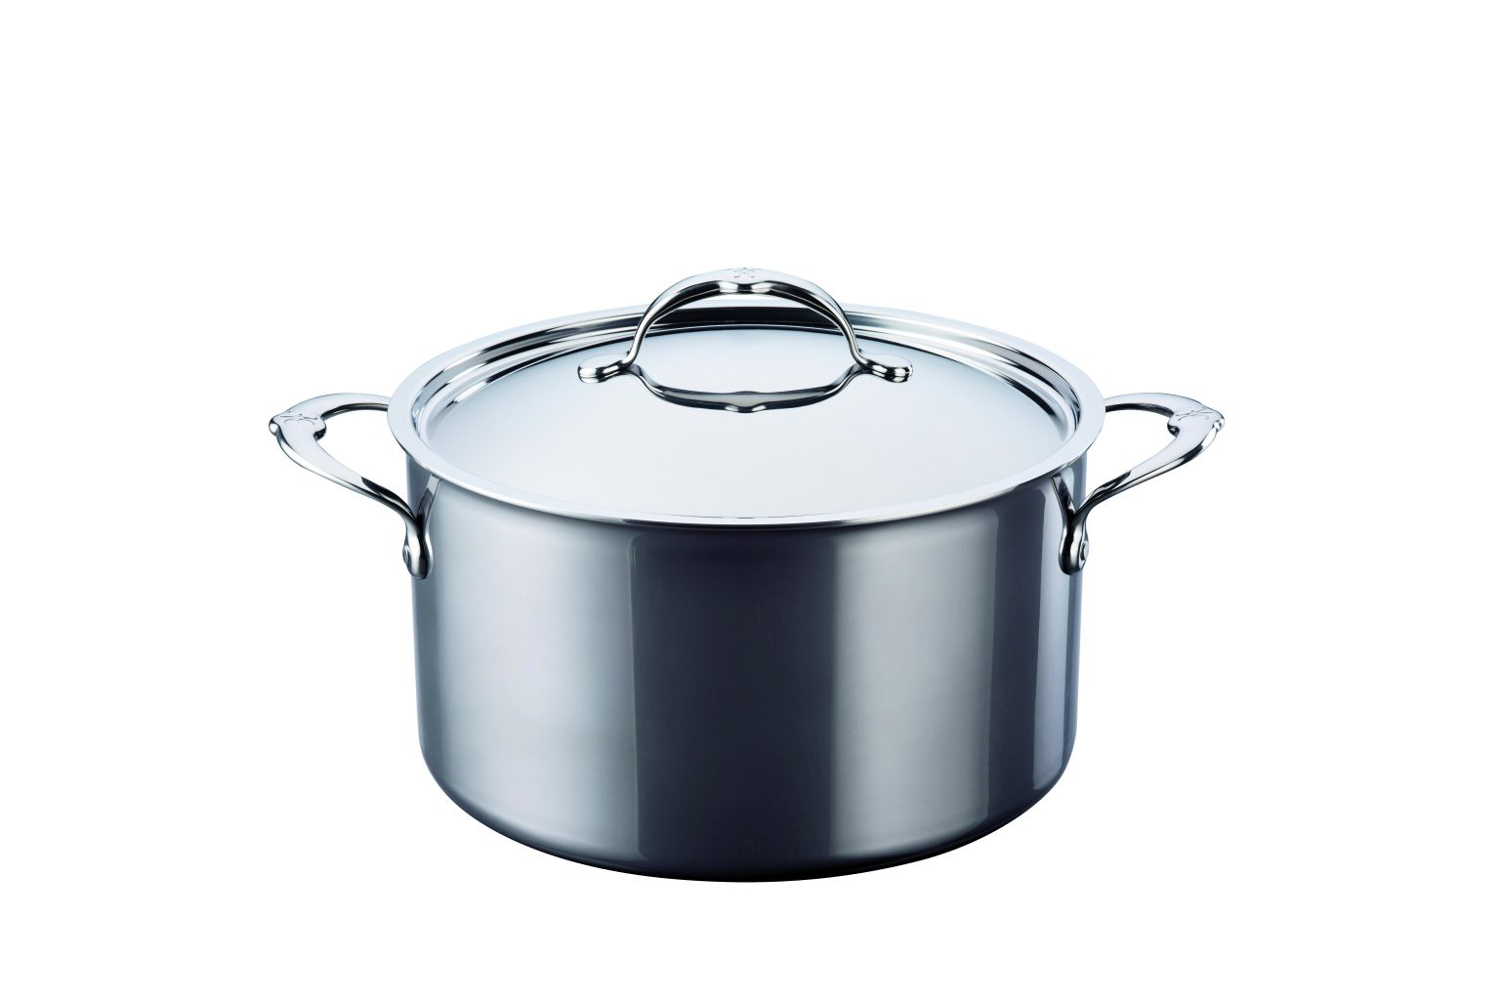 Hestan NanoBond Stainless Steel 8 qt. Covered Stockpot